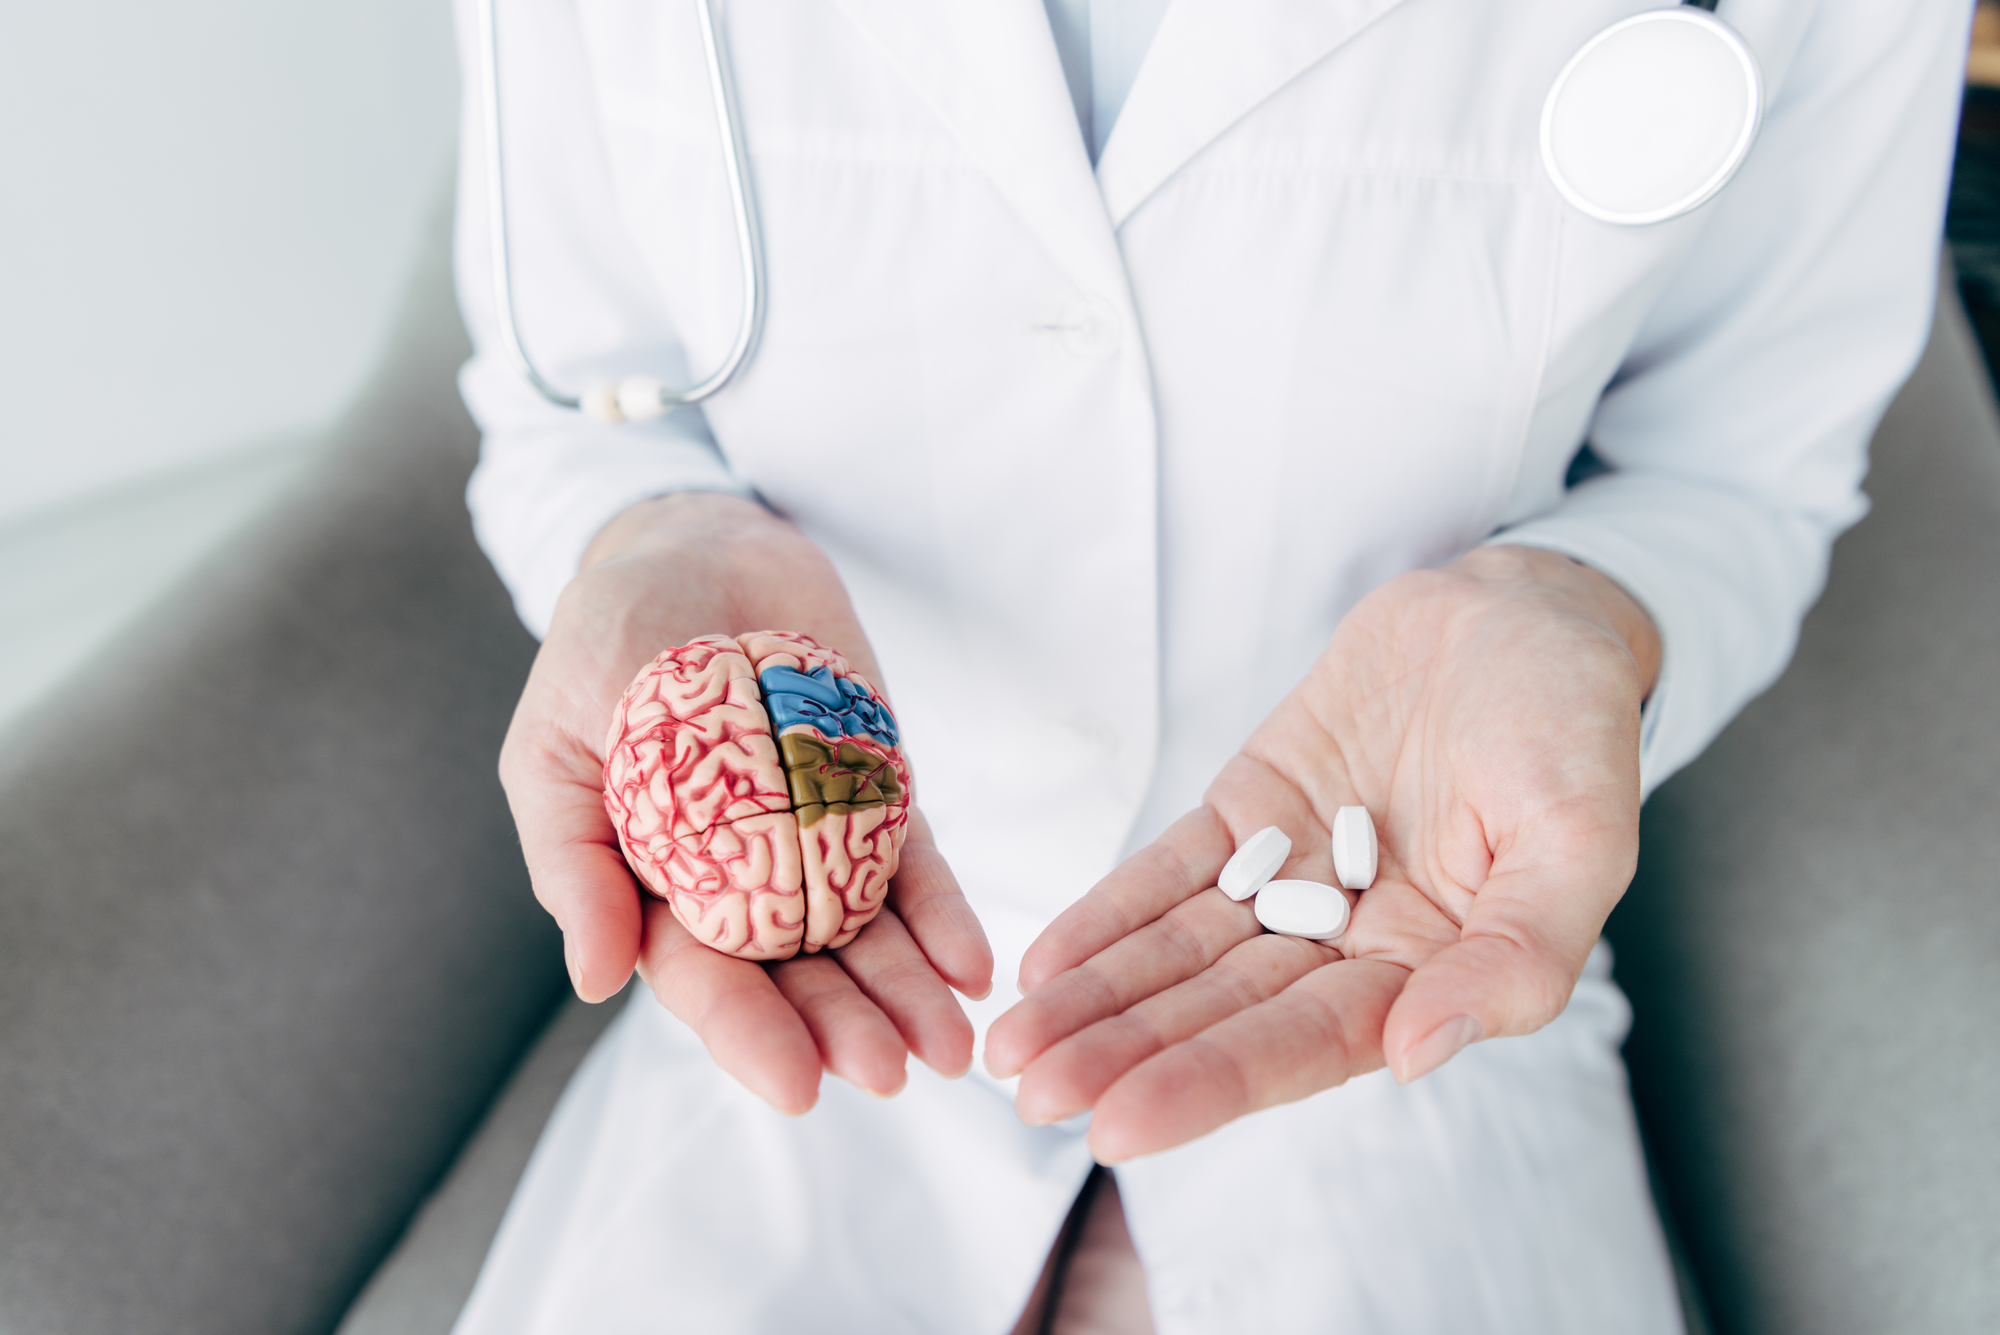 Pills for Brain Activity